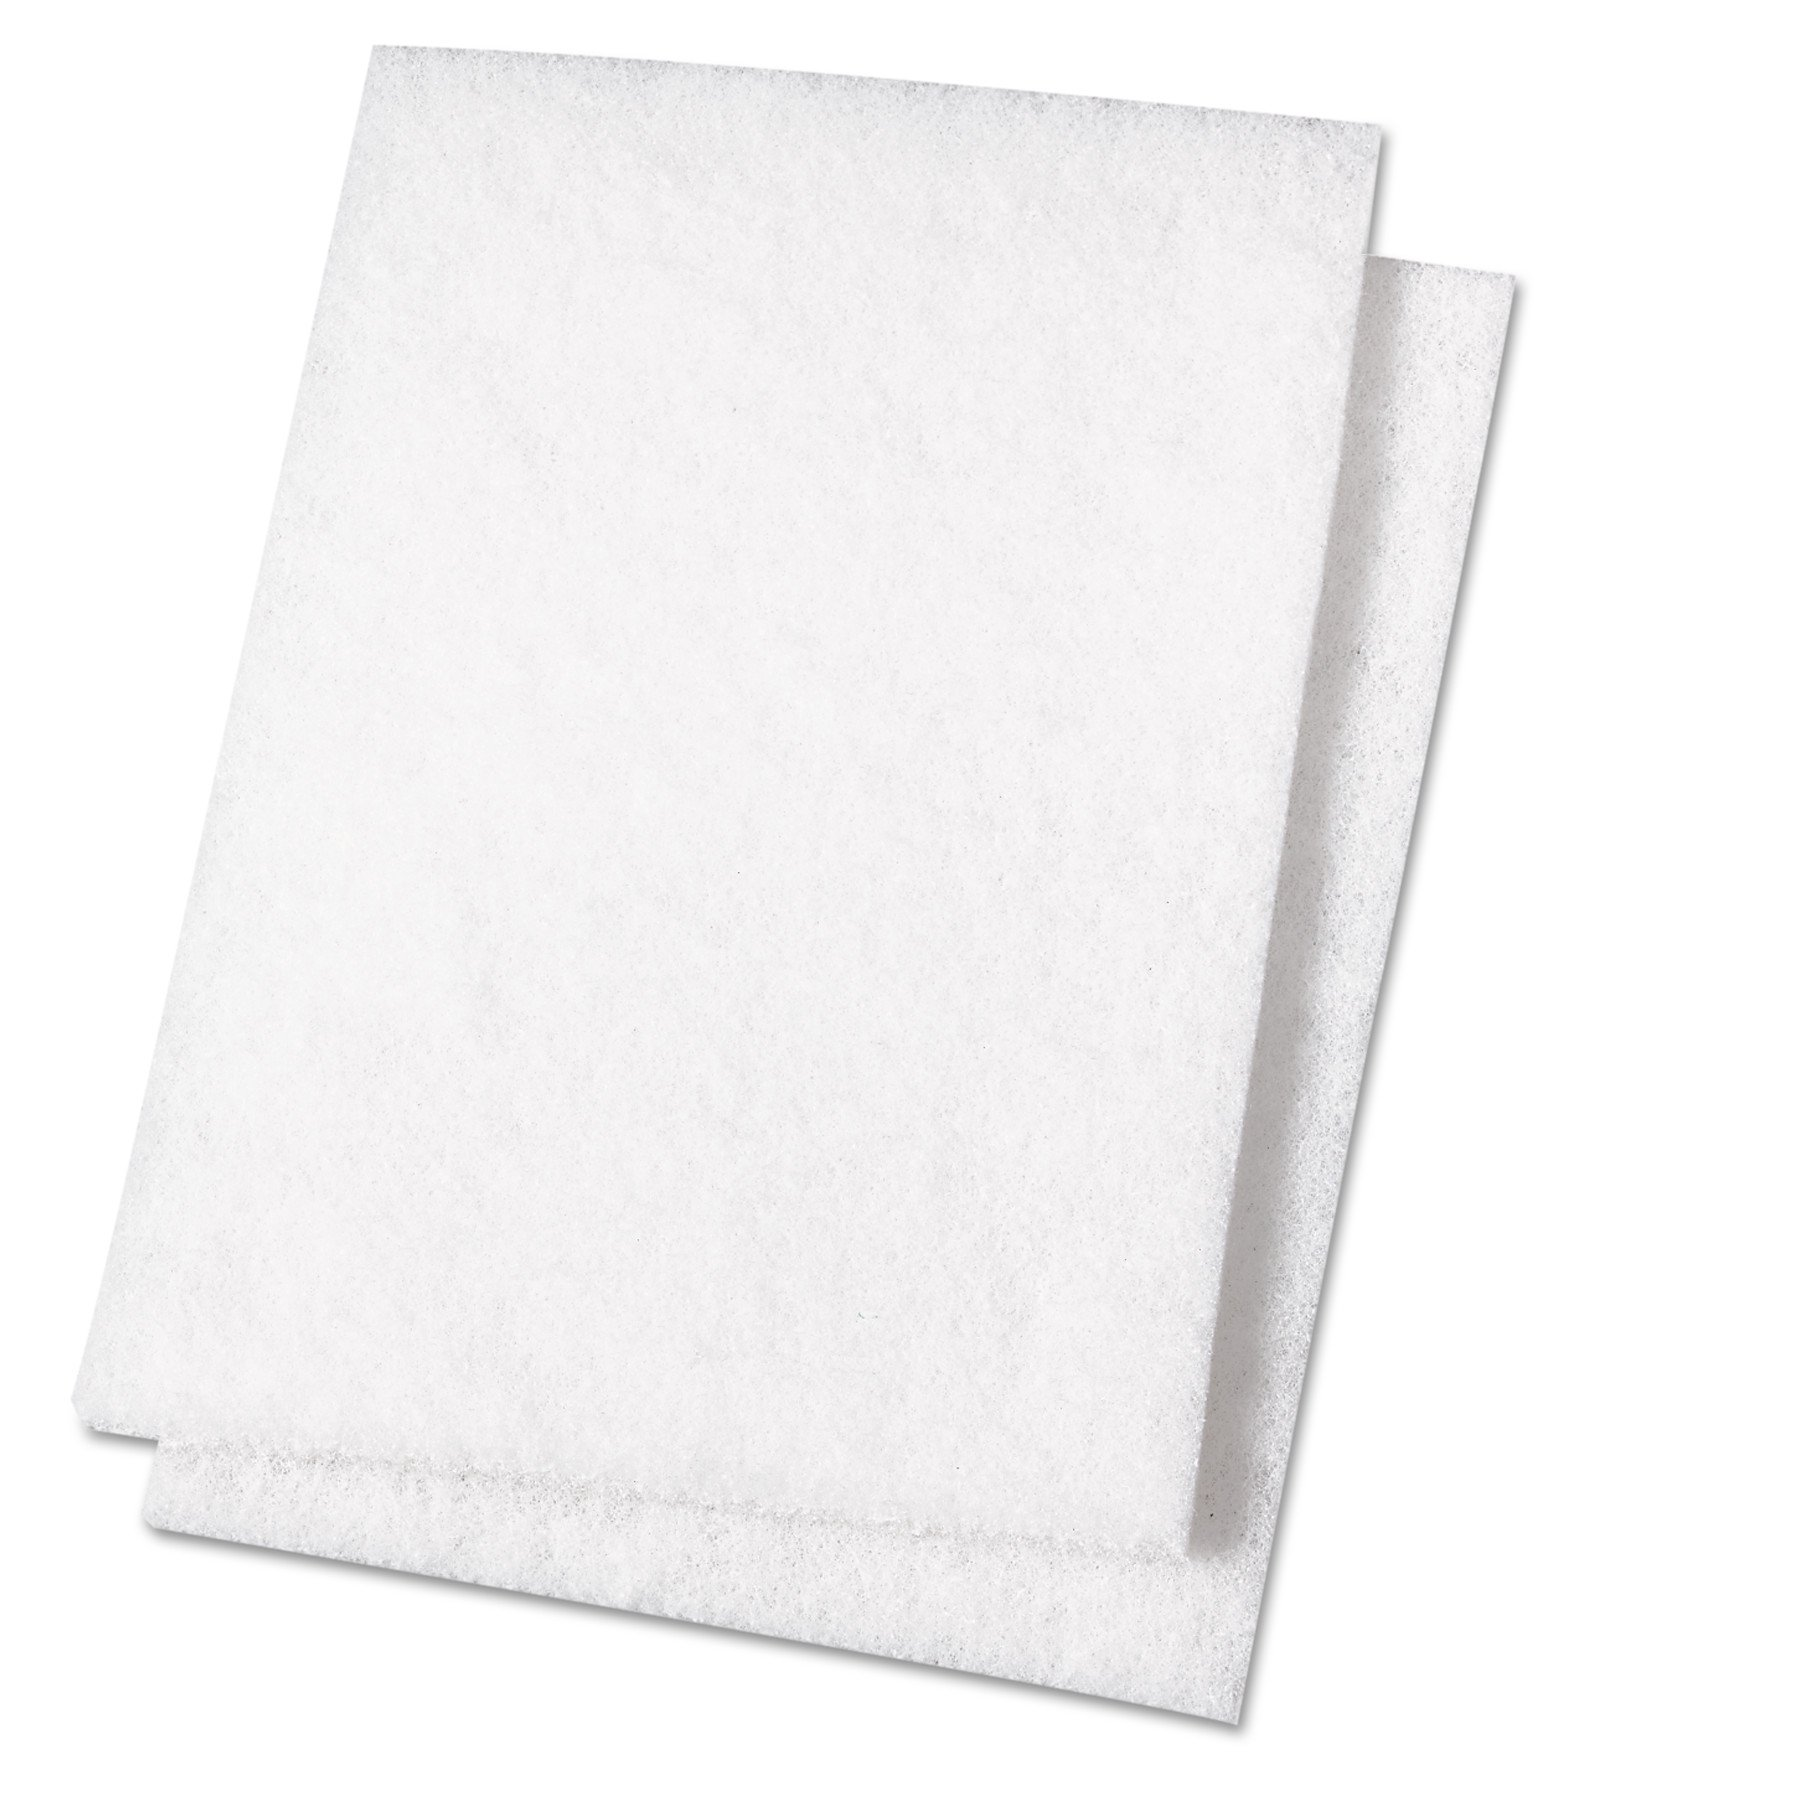 Premiere Pads PAD 198 Light Duty Scouring Pad, 9'' Length by 6'' Width, White (Case of 20) by Premiere Pads